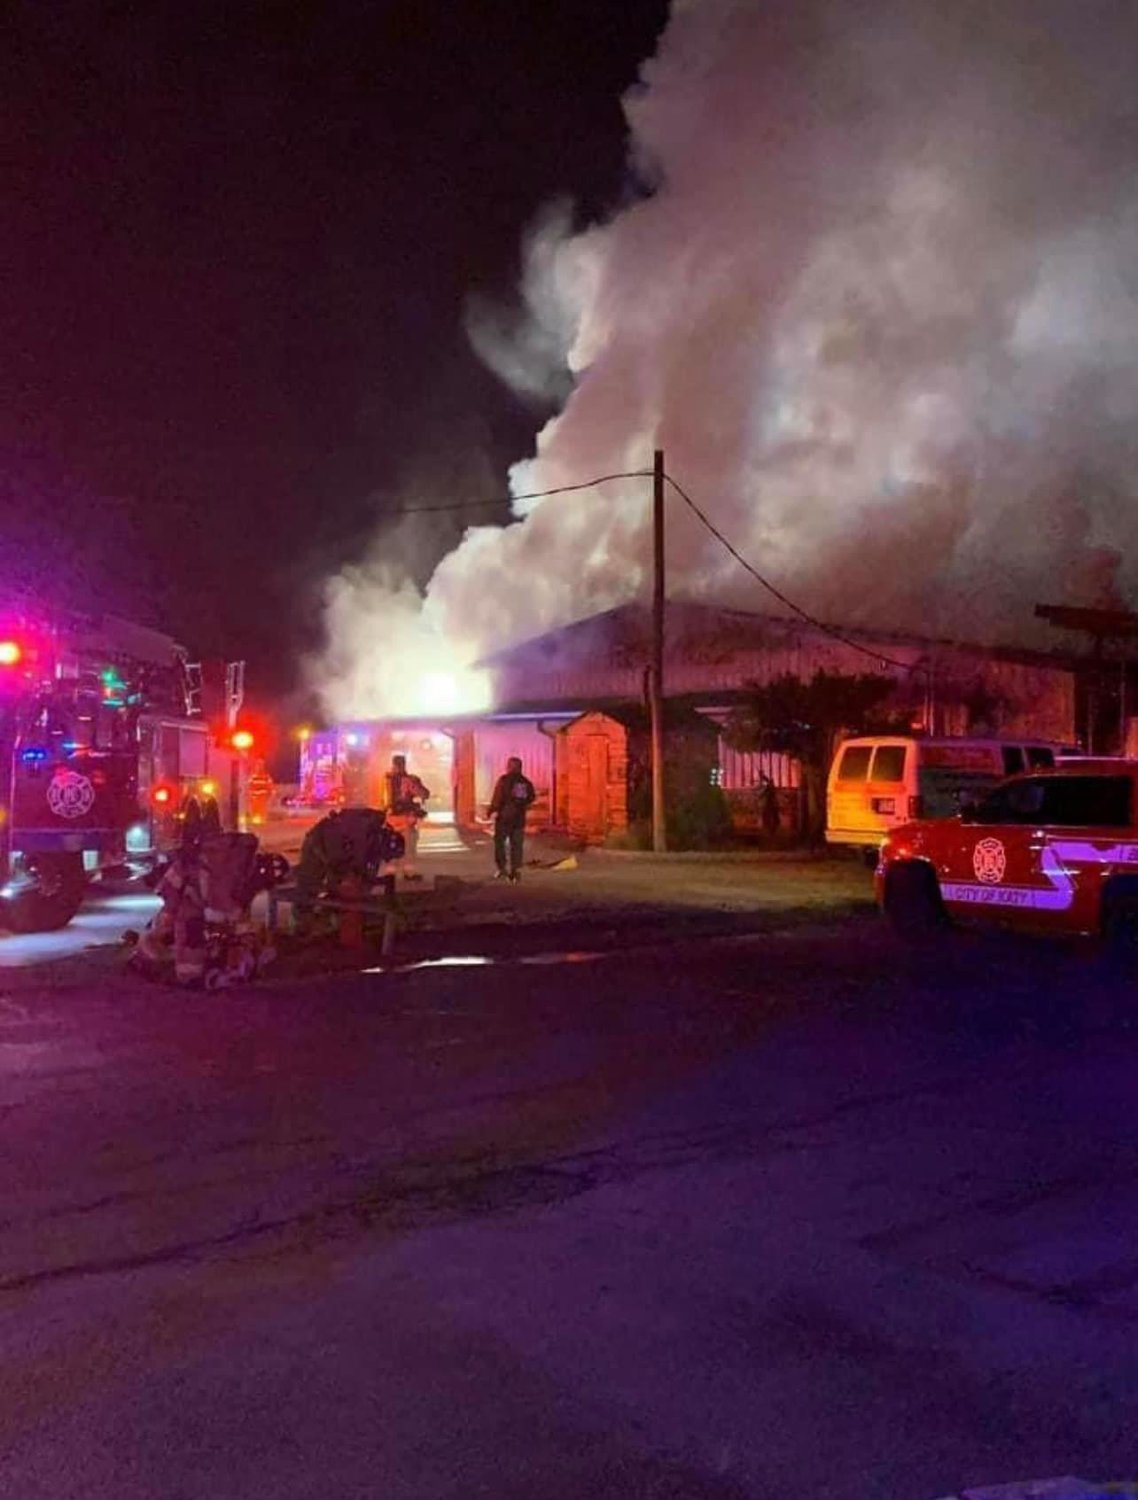 Multiple fire departments worked in tandem to fight the Midway BBQ fire, but damage was still severe. No firefighters or civilians were injured in the blaze.